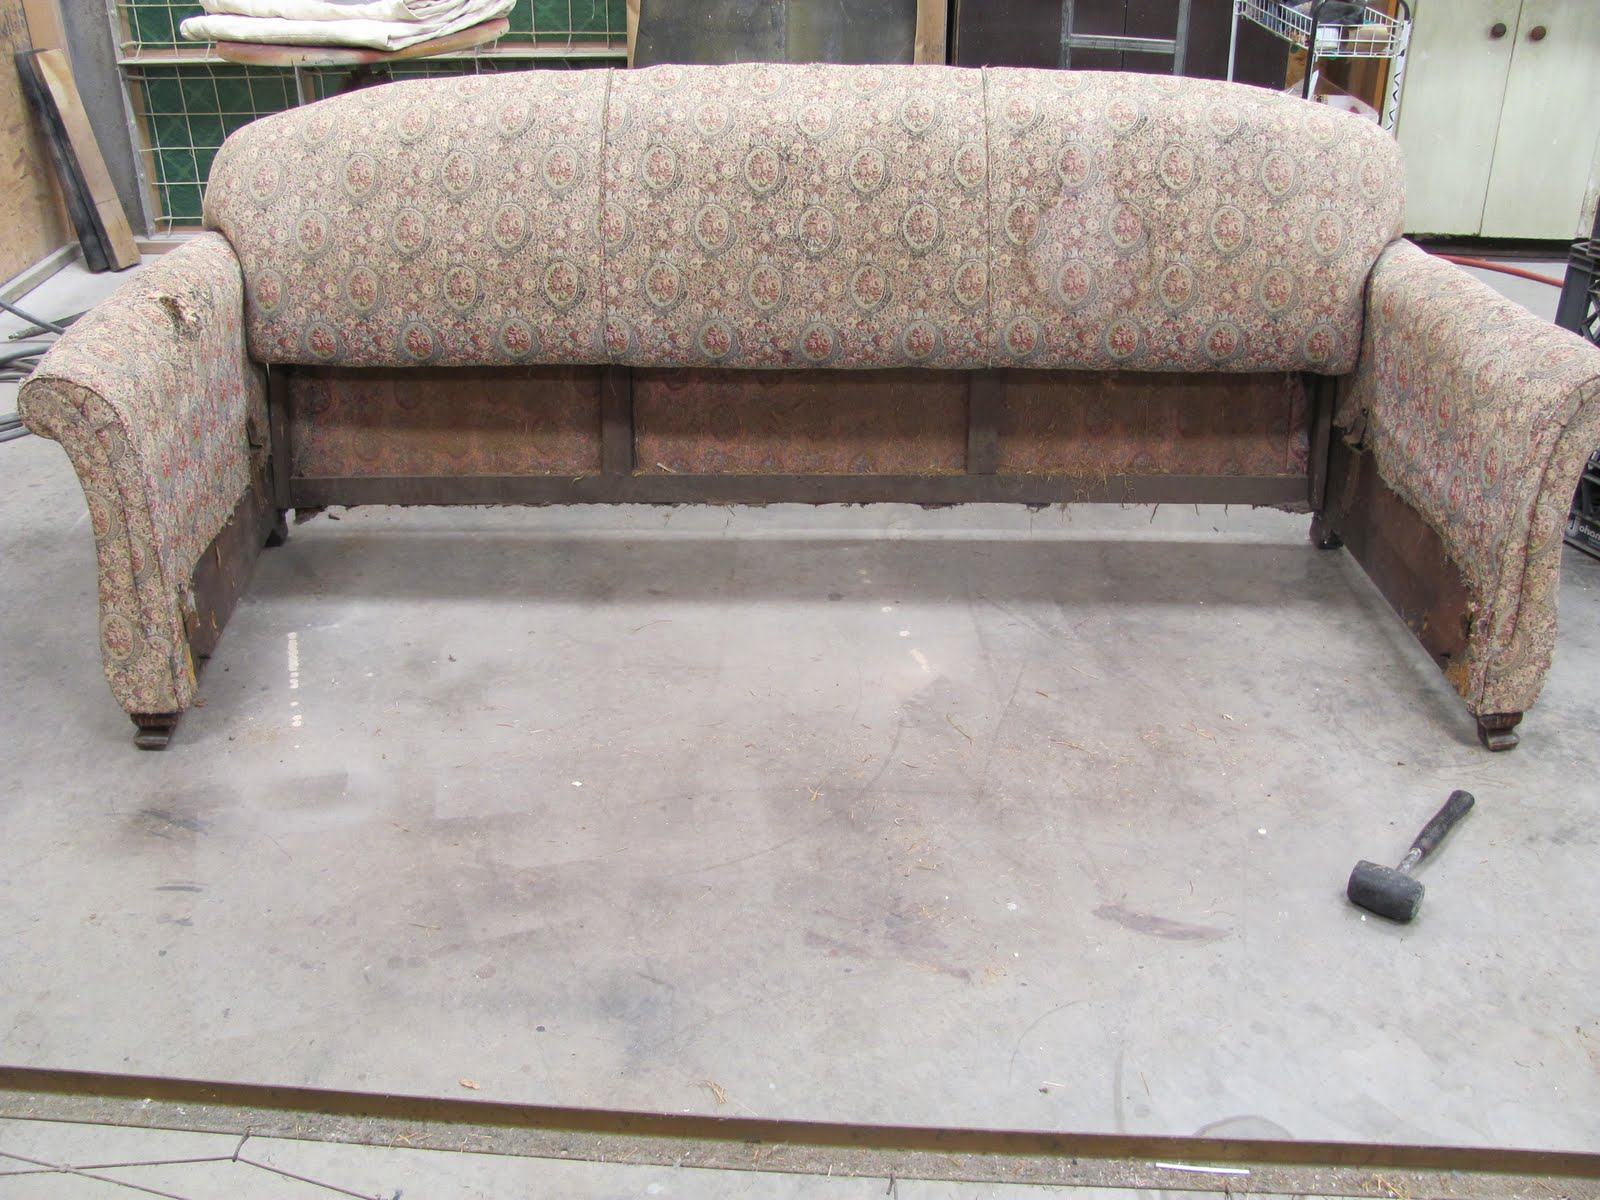 Repair Sofa Wood Frame Minotti Designs Sleeper Thomas Nelson Furniture Restoration